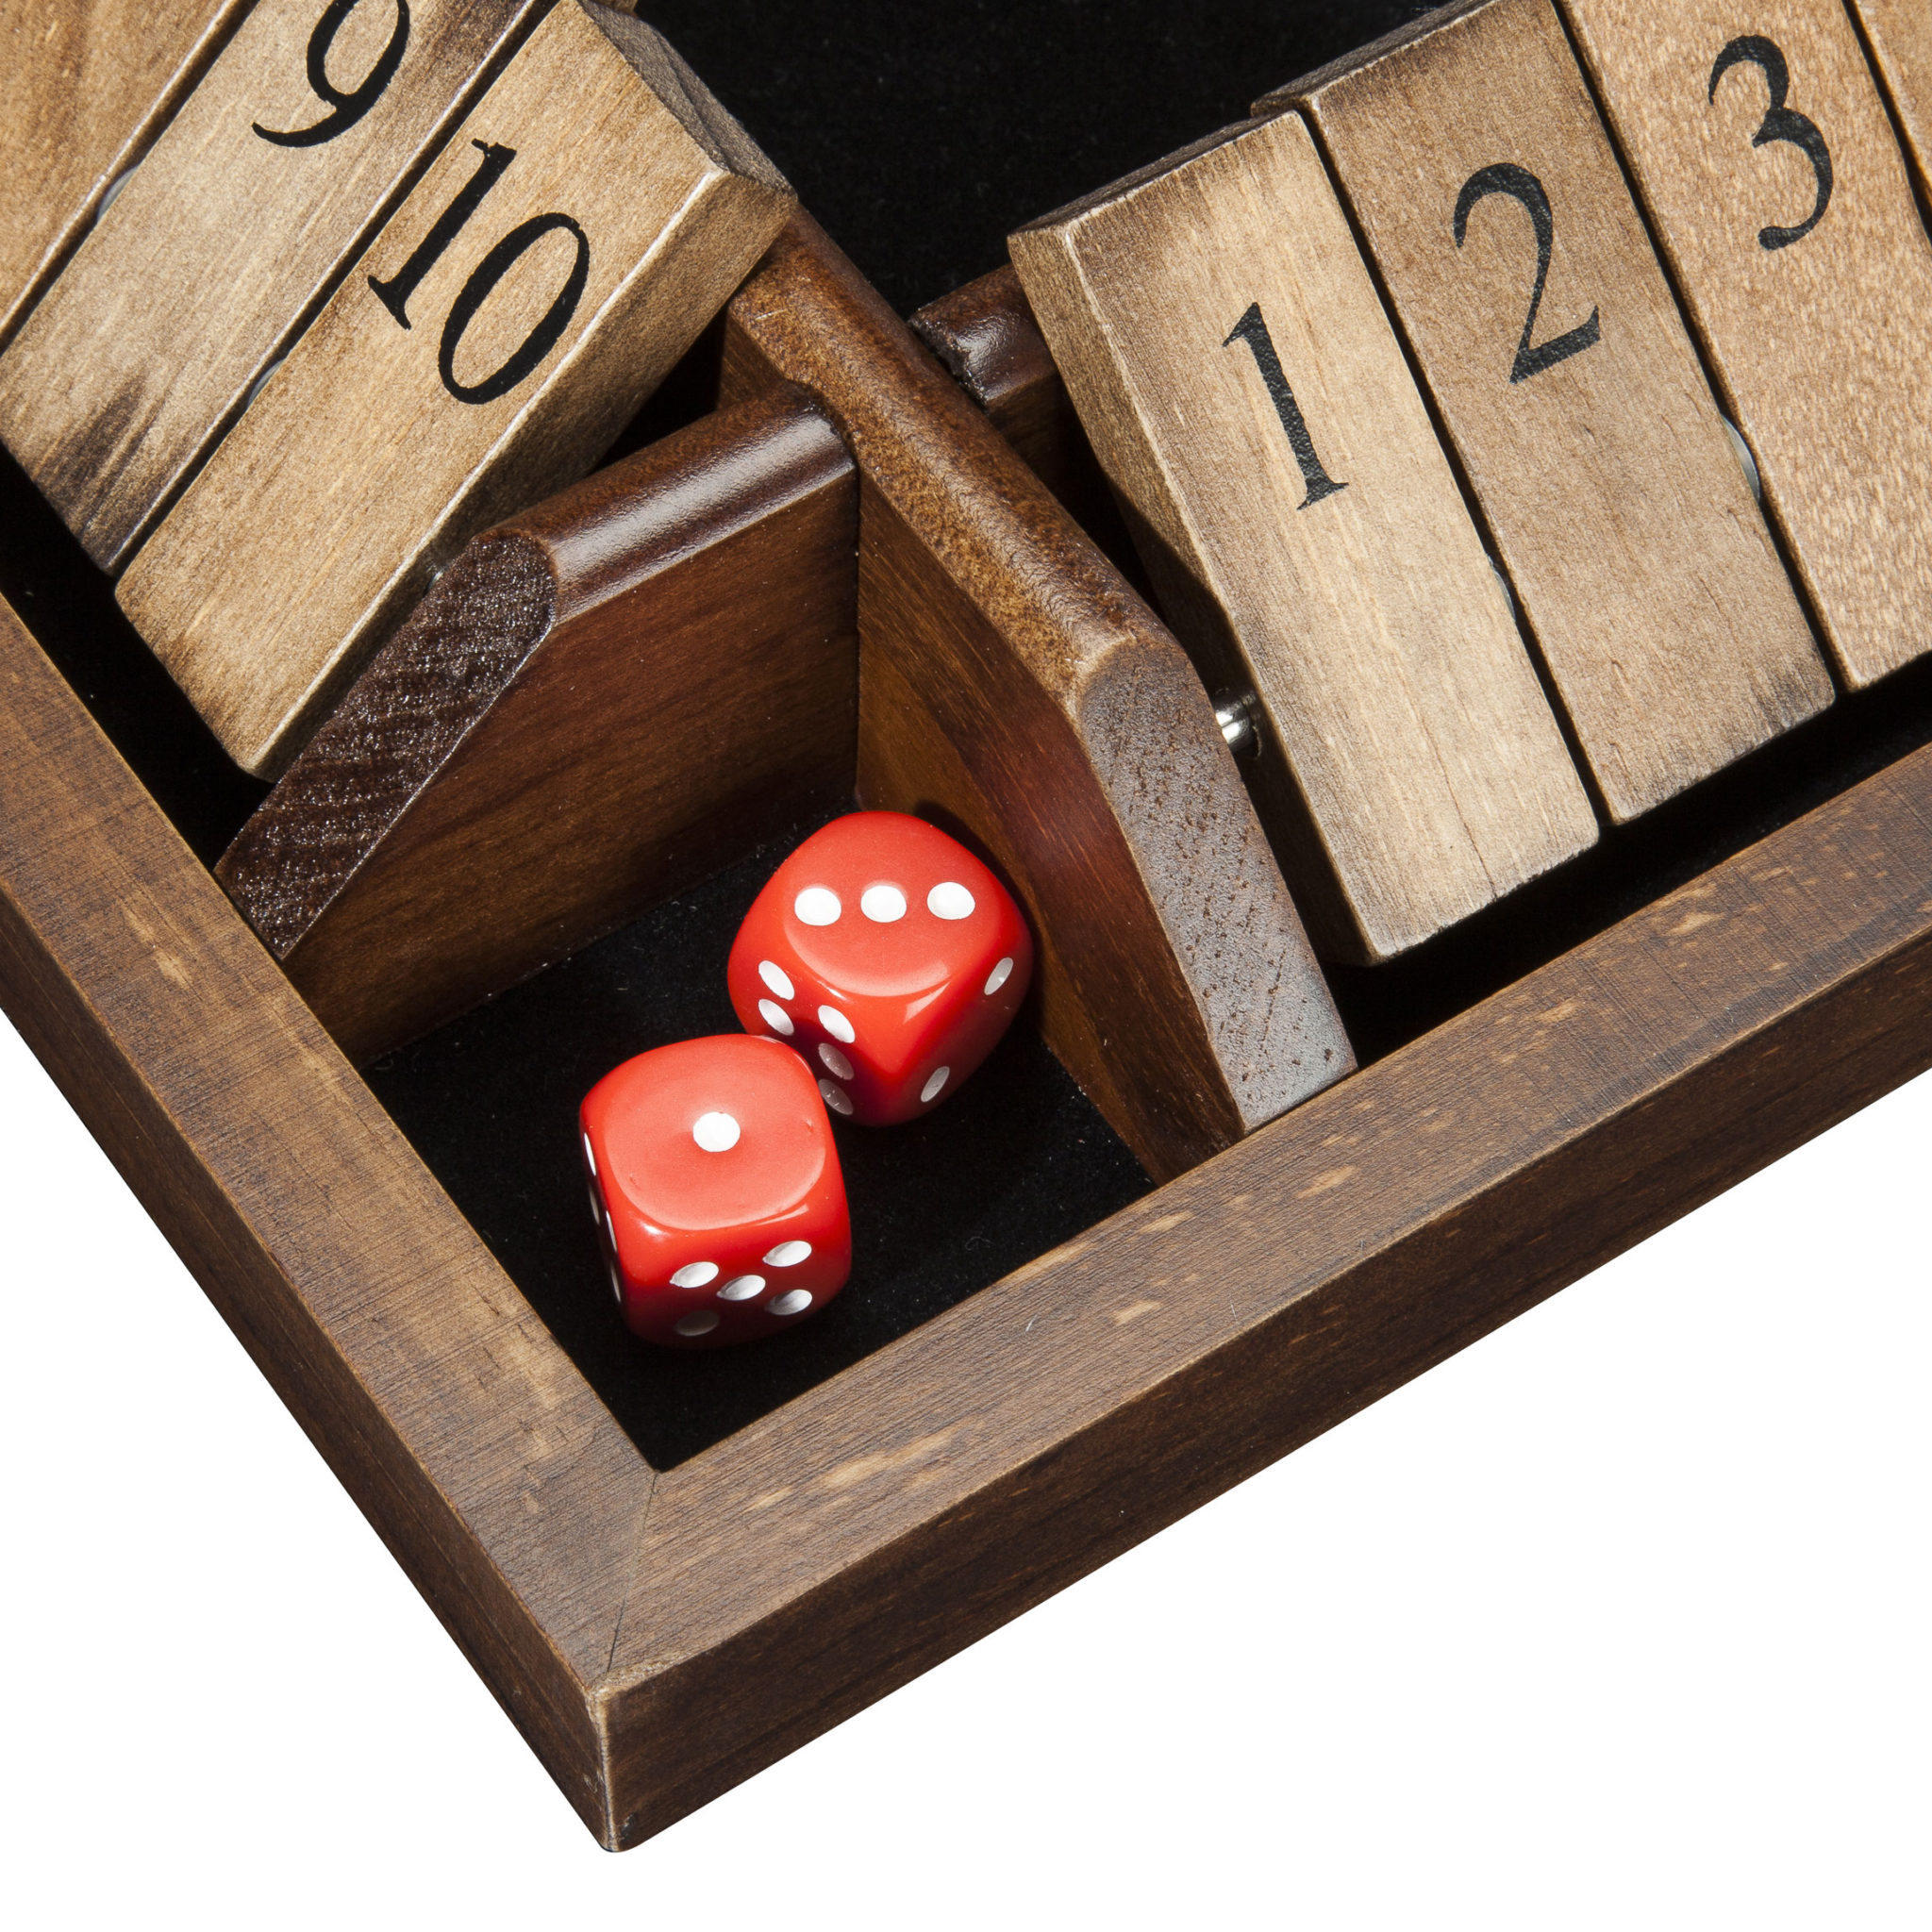 We Games 4 Player Shut The Box Travel Size 8 Inches